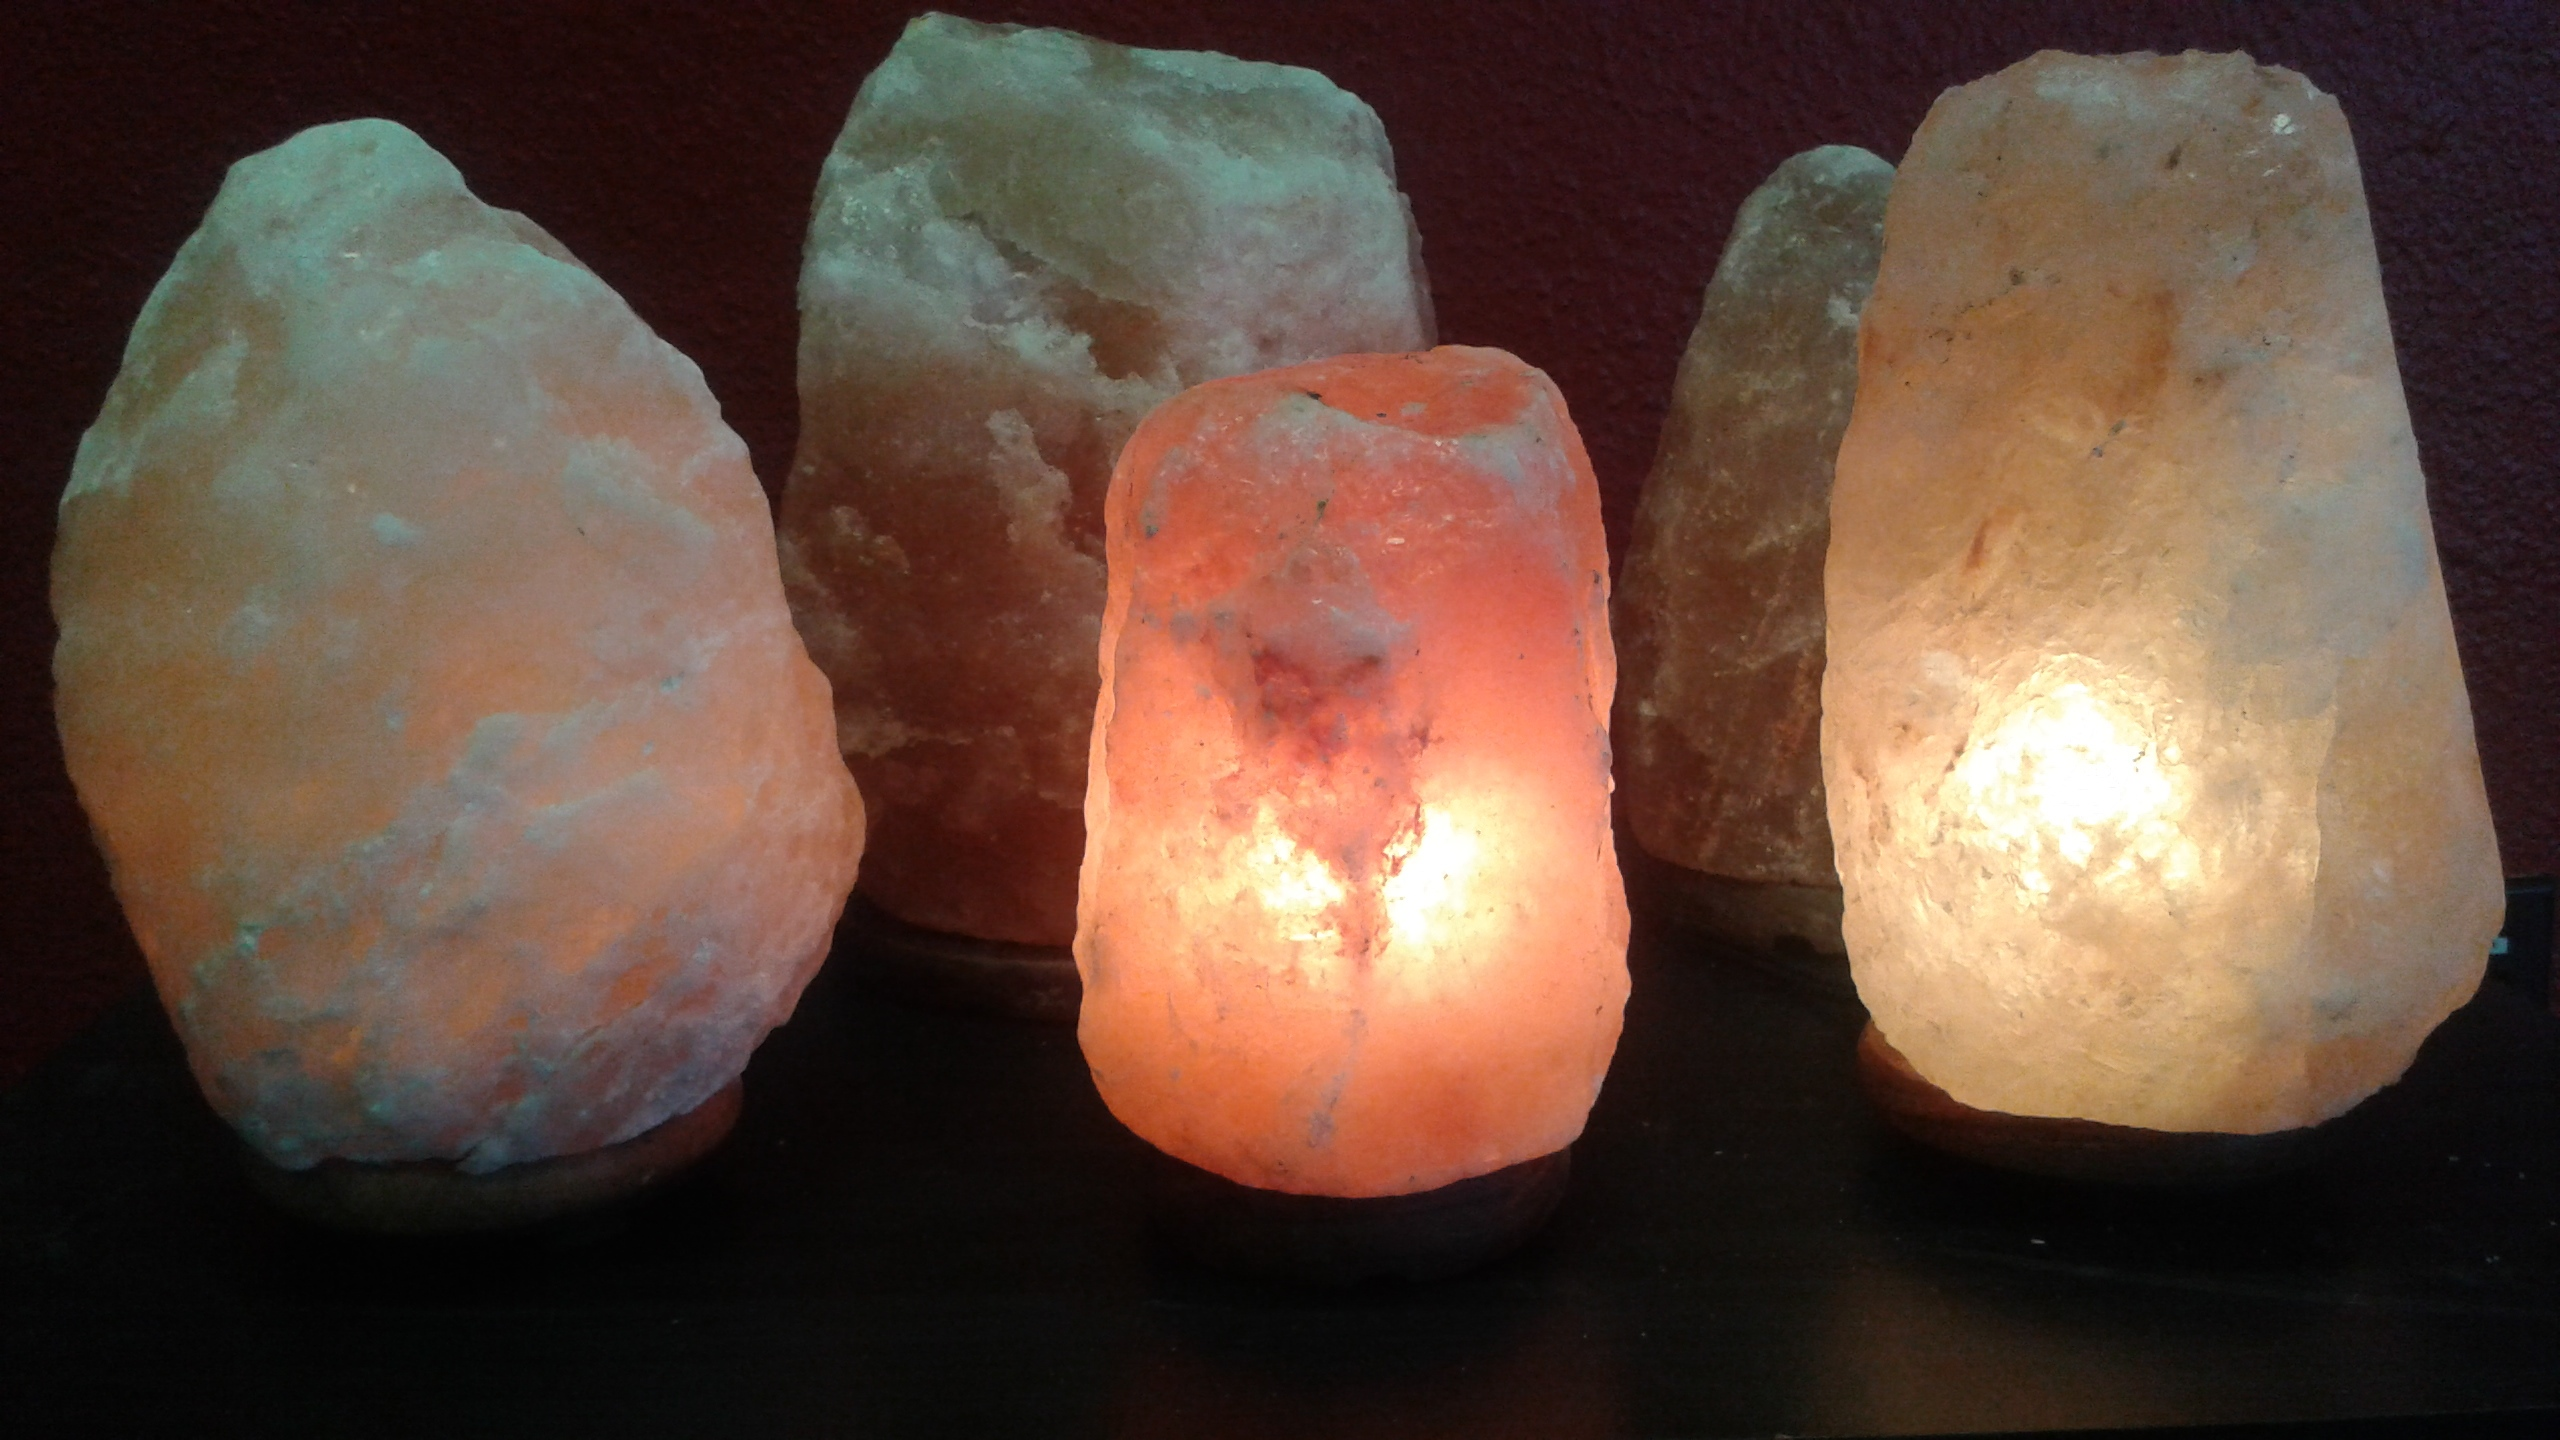 <div class='slider_caption'>		 <h1>Himalayan Salt Lamps</h1> 			<a class='slider-readmore' href='http://www.deepbreathahhh.com/products/himalayan-salt-lamps/'>Products</a>